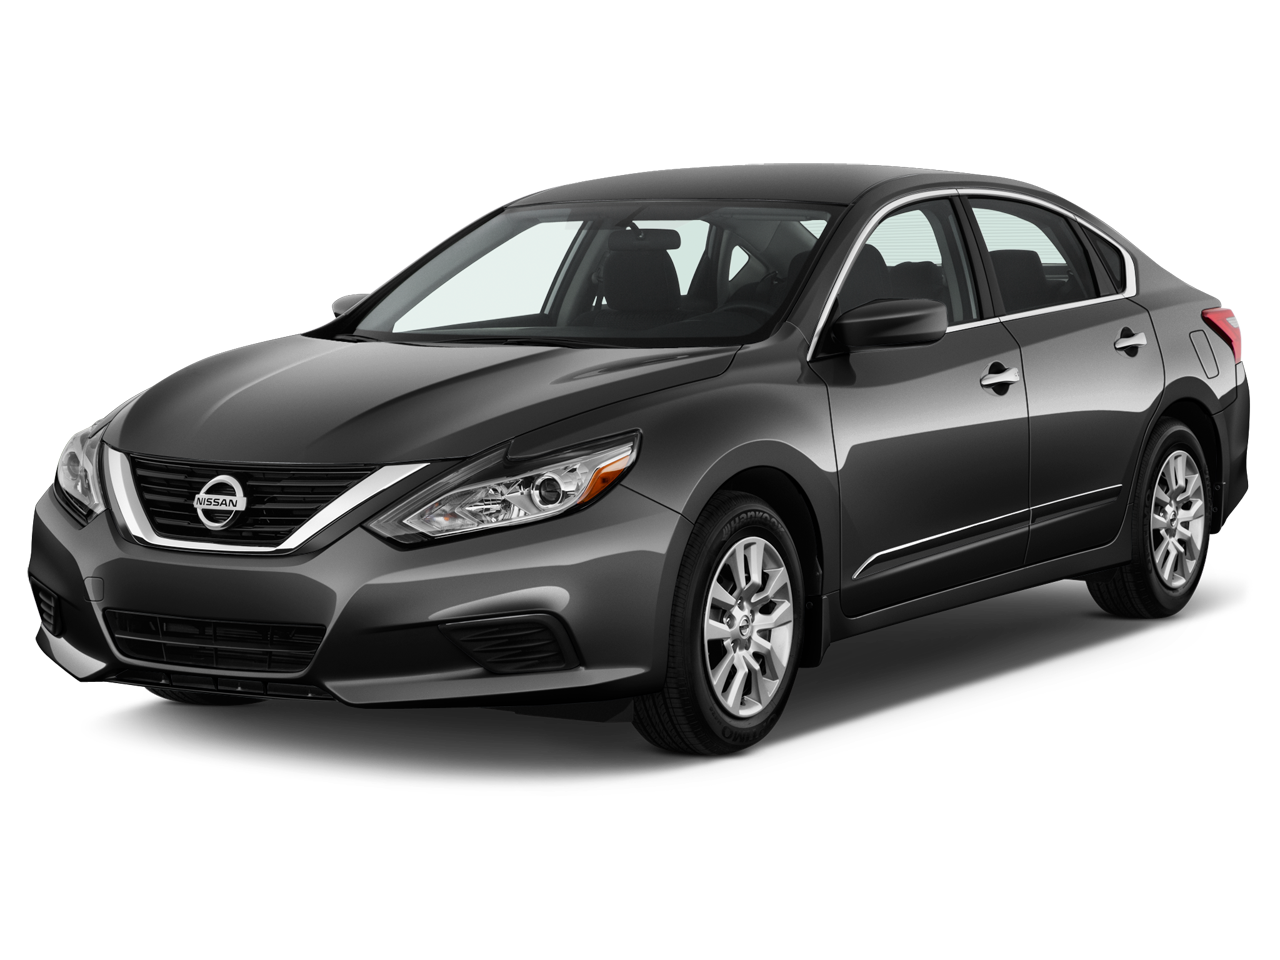 Pine Belt Cadillac >> New 2017 Nissan Altima S - Near Toms River NJ - Pine Belt Auto